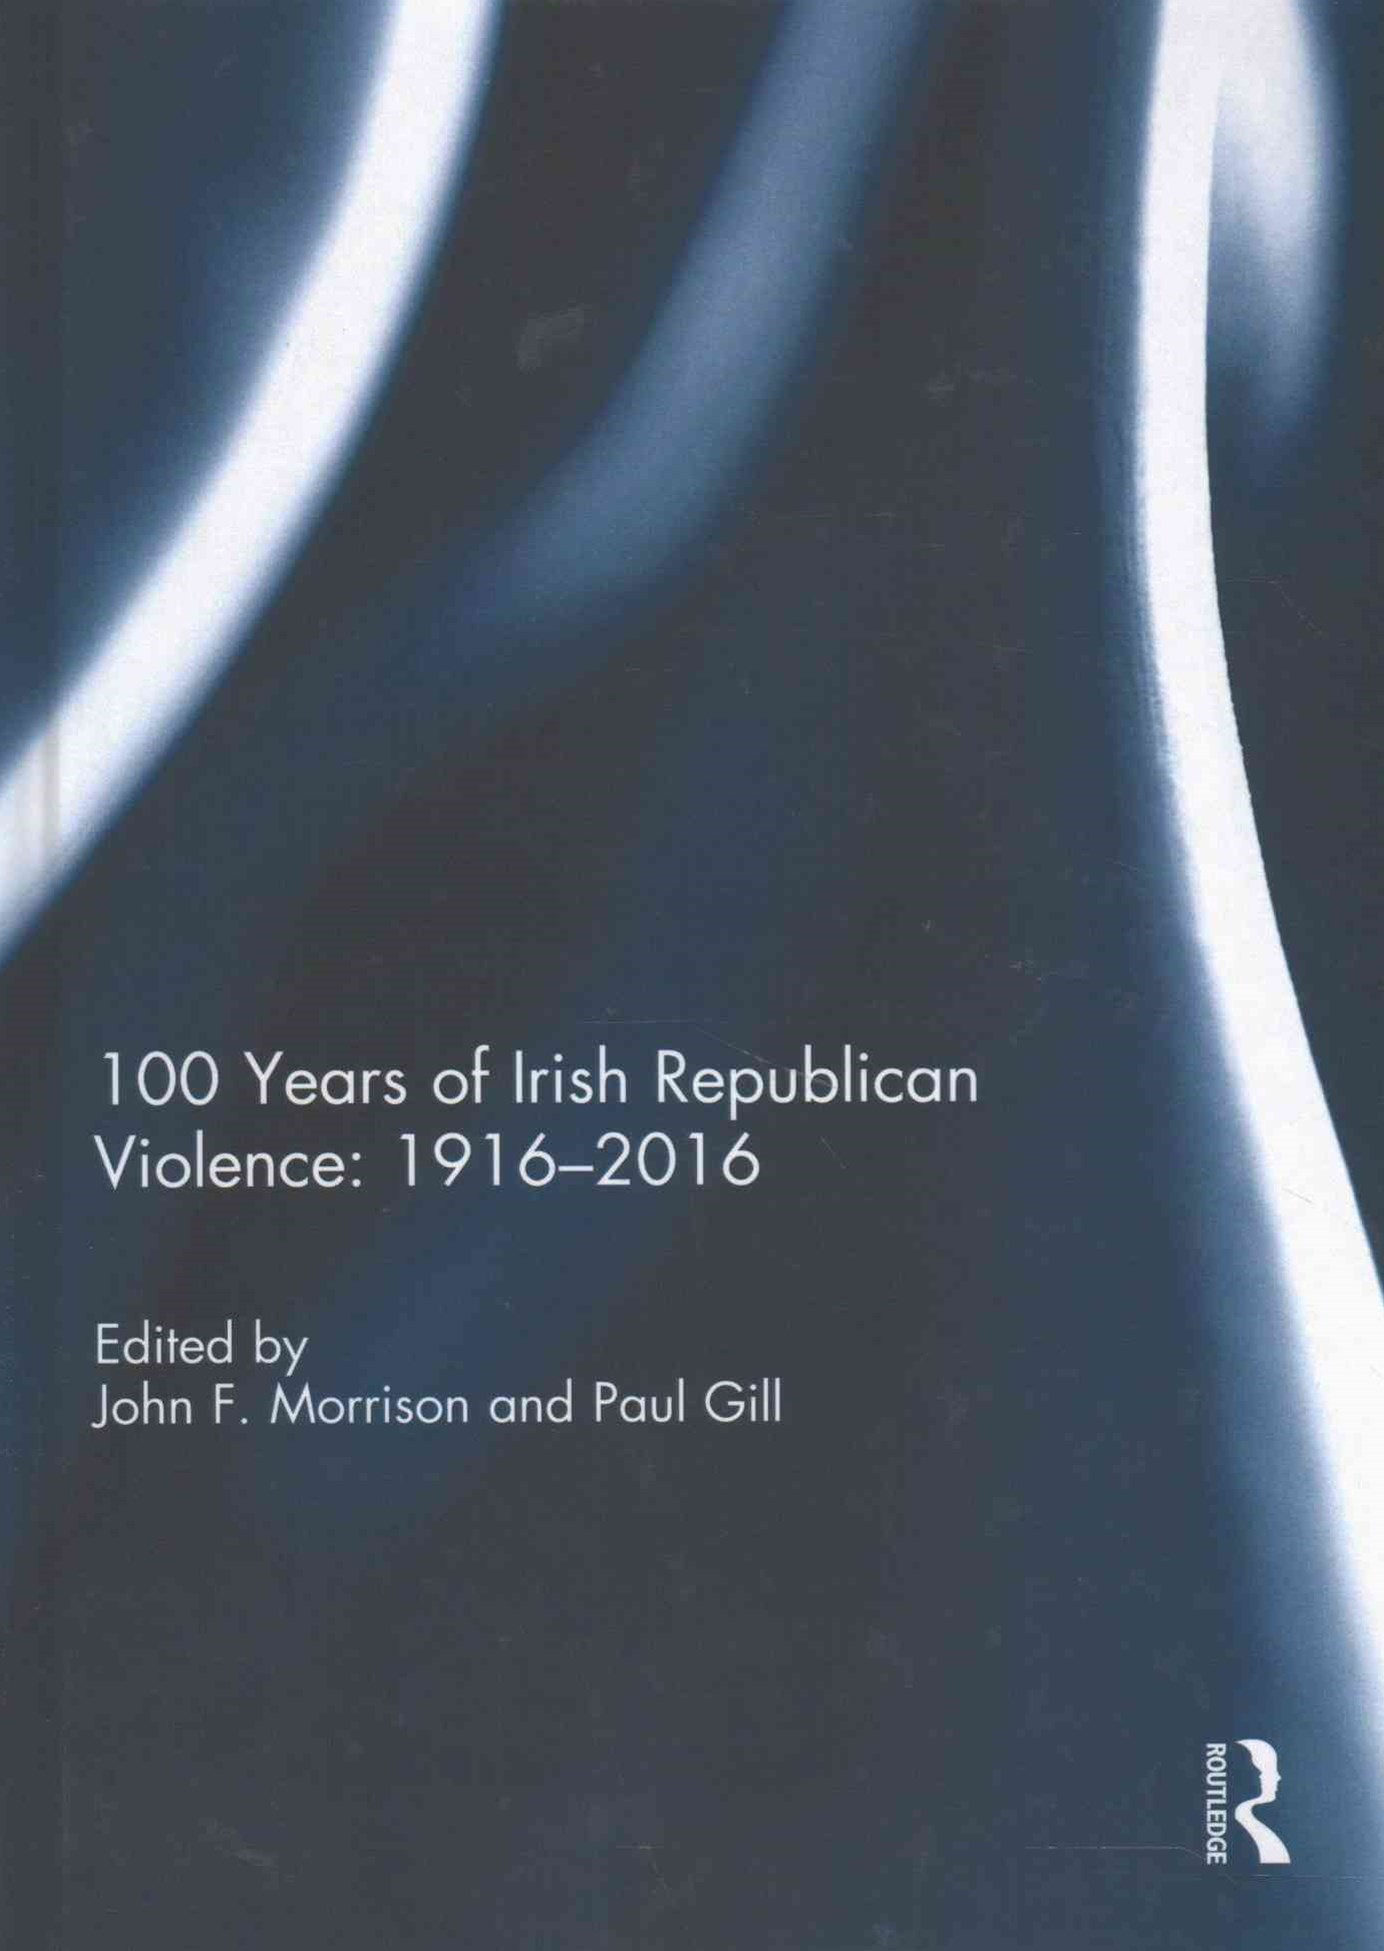 100 Years of Irish Republican Violence: 1916-2016